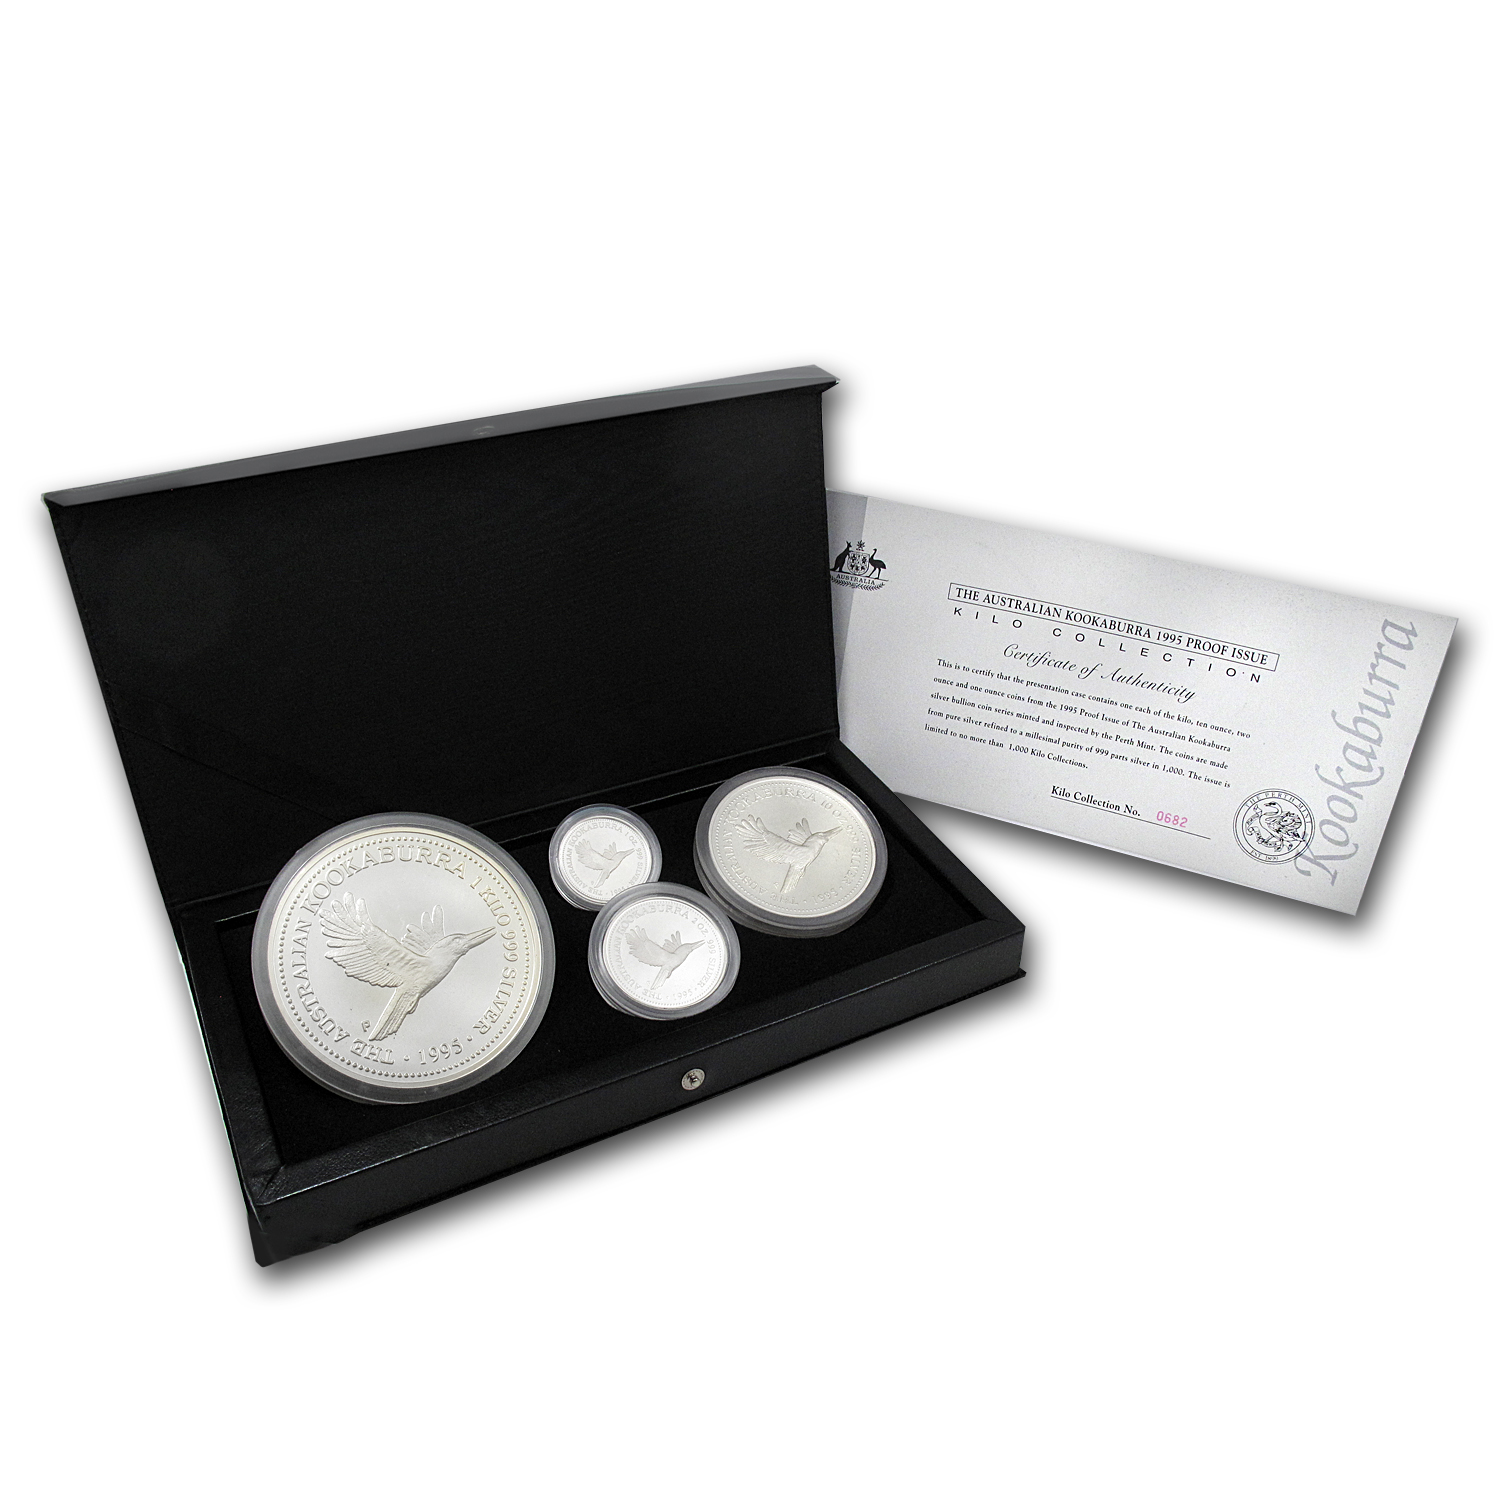 1995 4-Coin Silver Australian Kookaburra Proof Set